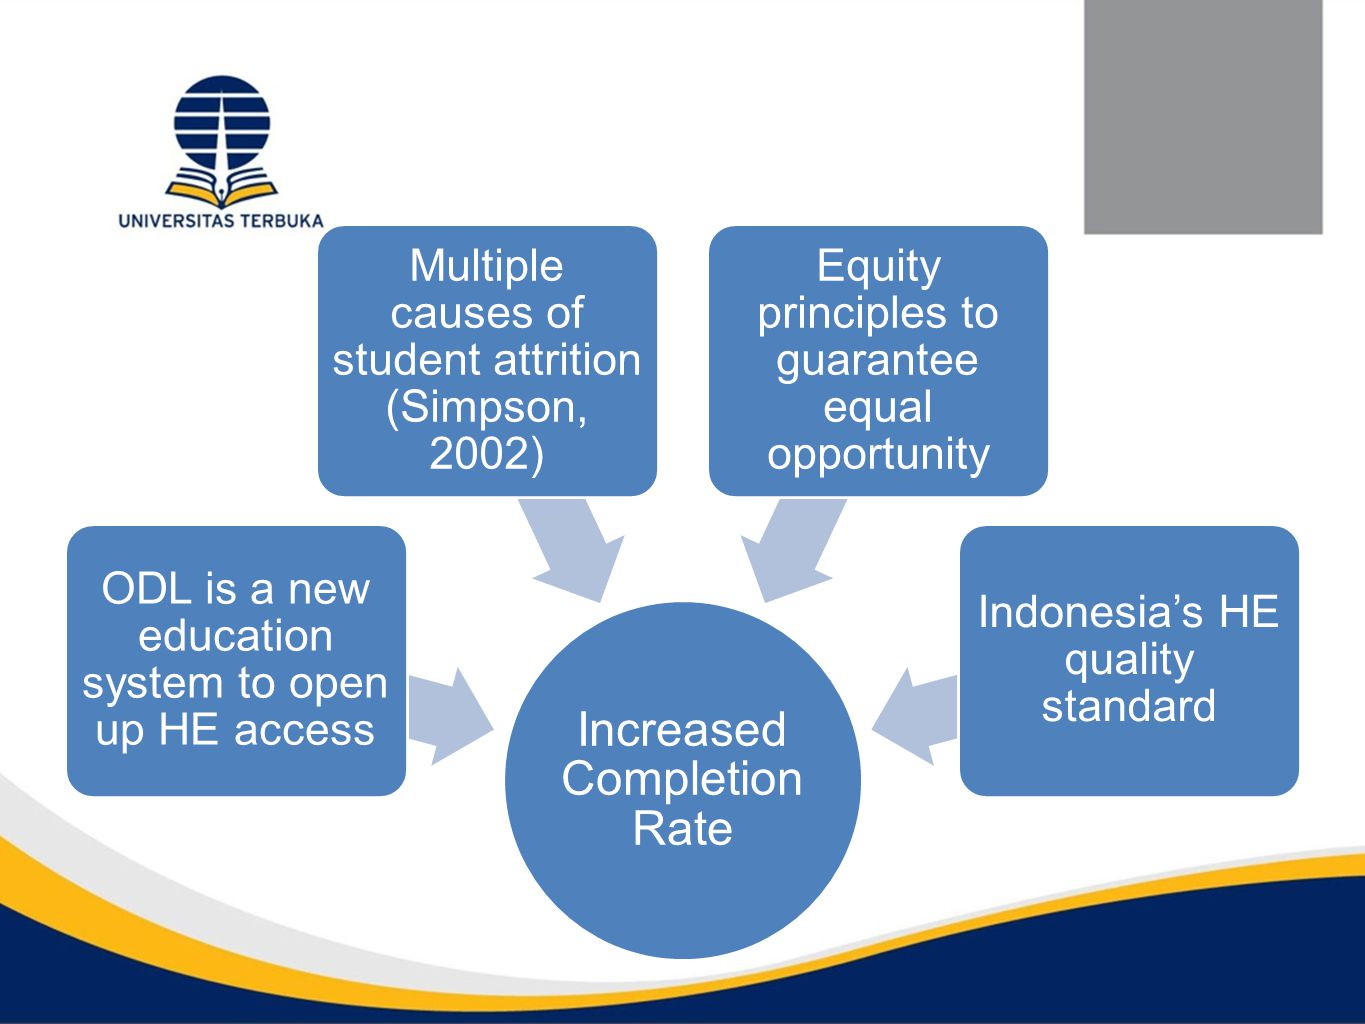 Increased Completion Rate ODL is a new education system to open up HE access Multiple causes of student attrition (Simpson, 2002) Equity principles to guarantee equal opportunity Indonesia's HE quality standard